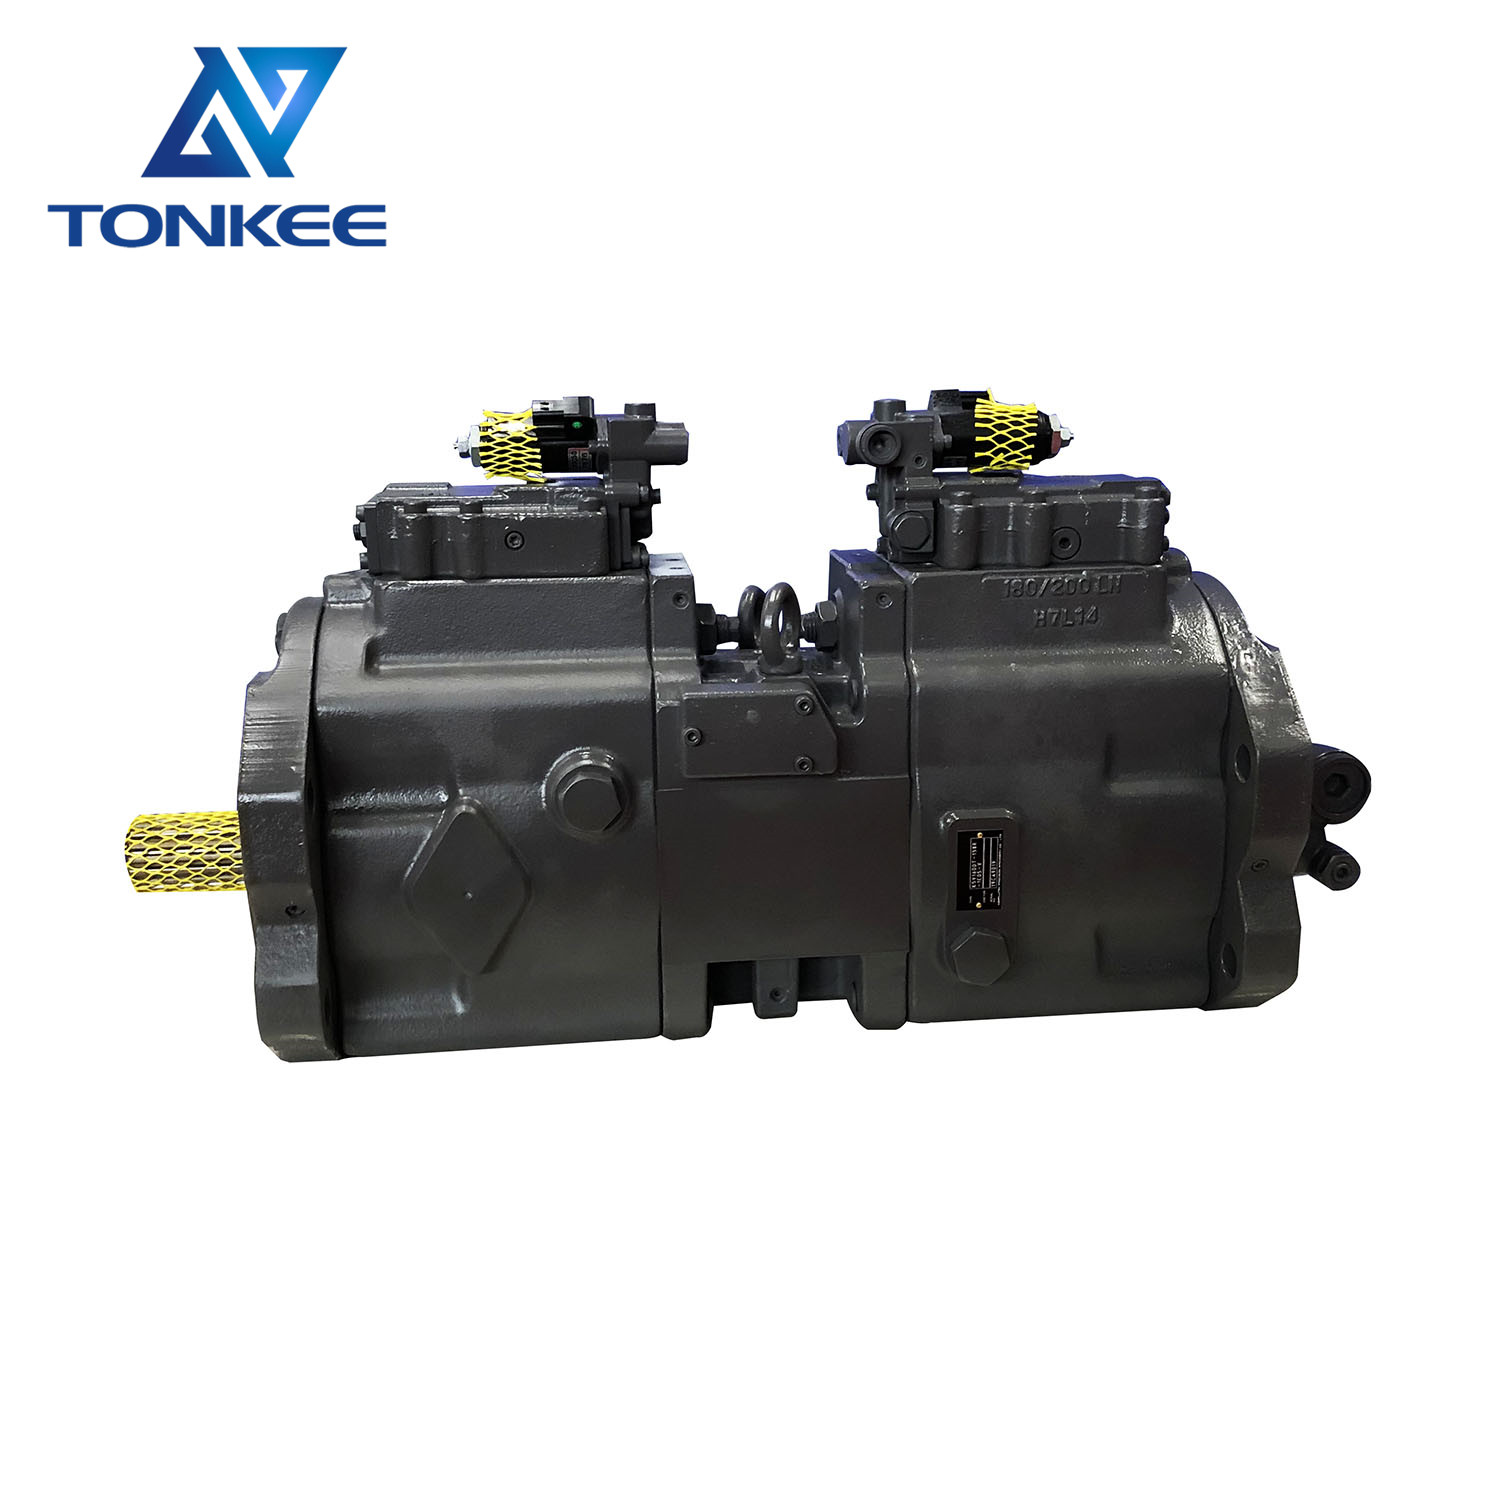 heavy machinery parts 14603650 K5V160DT-15BR-1E05 KPM K5V160DT hydraulic main pump excavator EC220D EC250D EC300D EC350D hydraulic piston pump assembly suitable for VOLVO